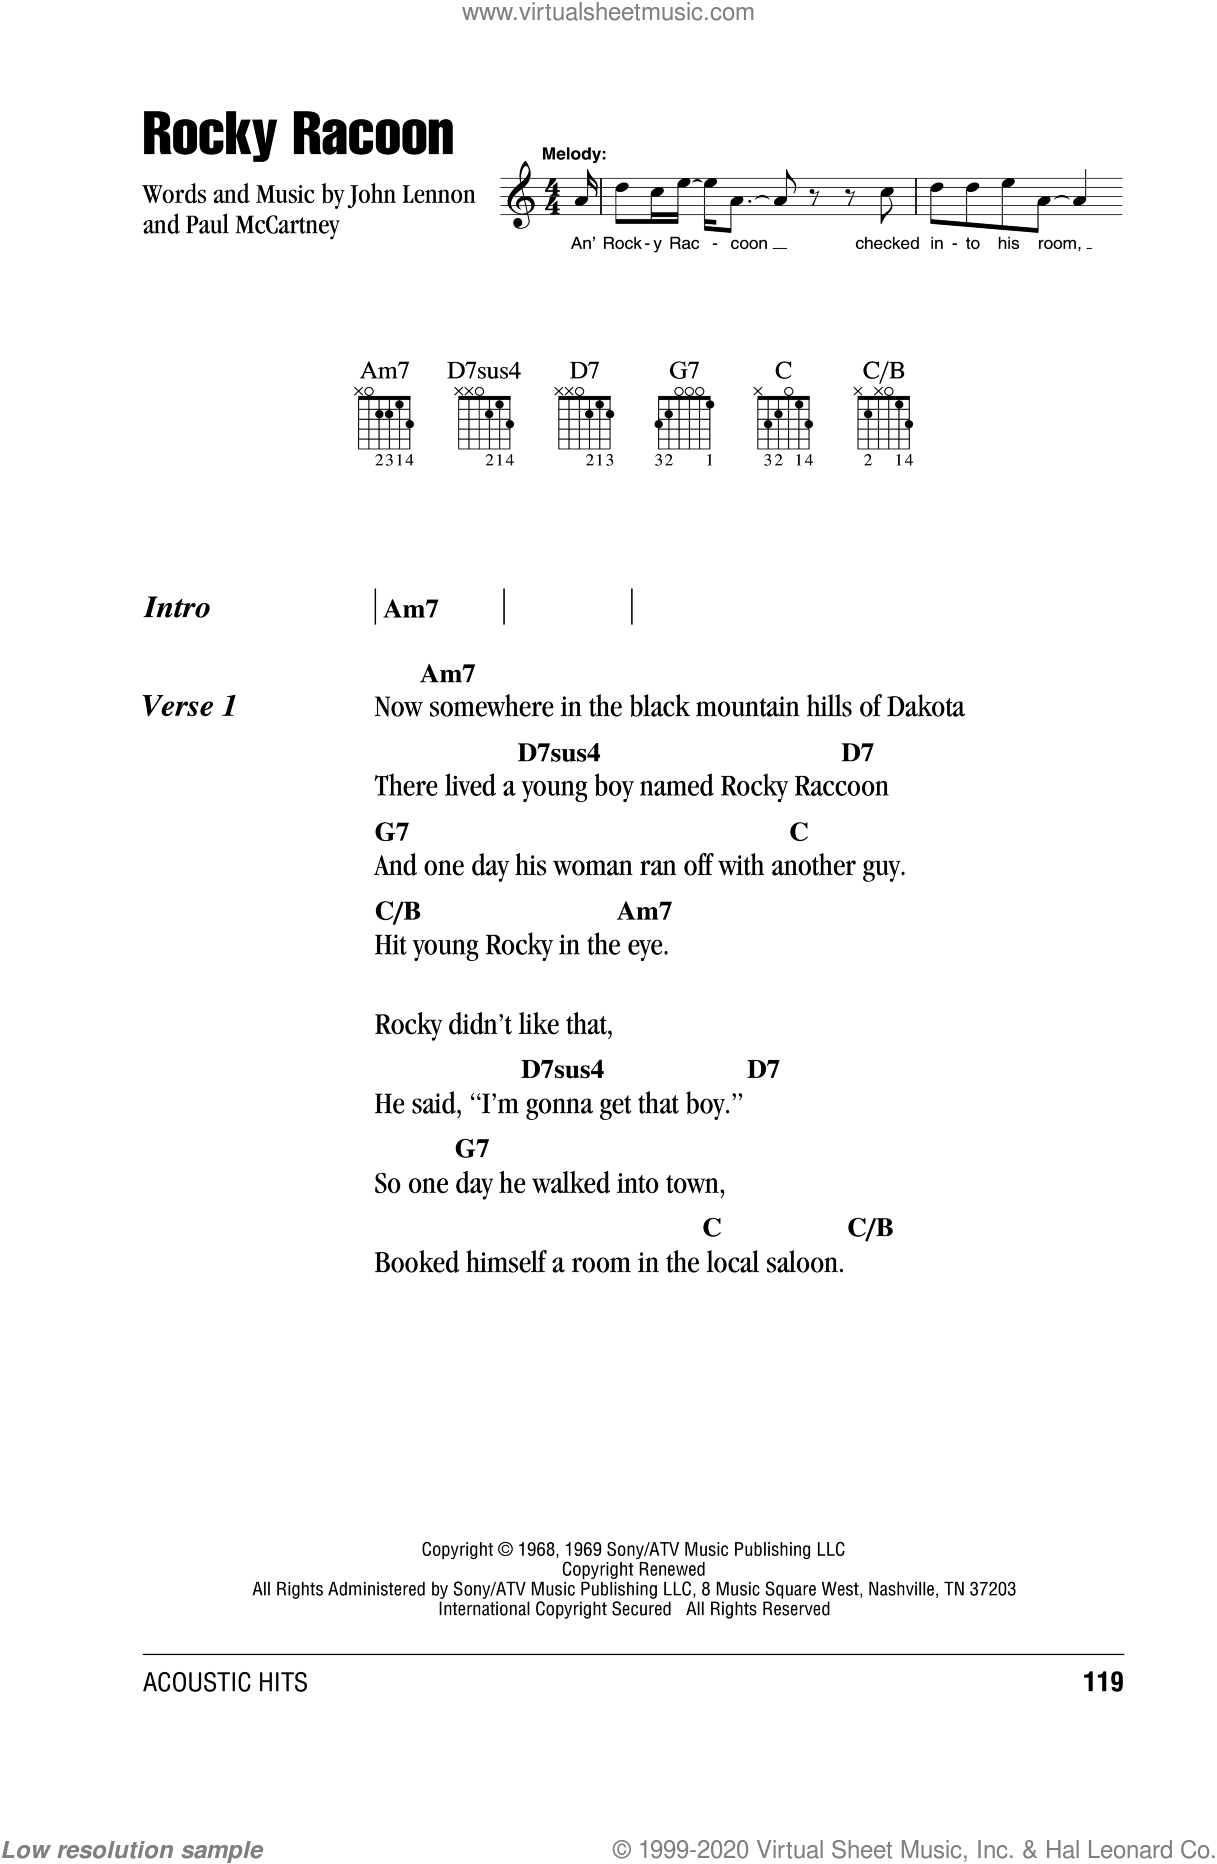 Rocky Raccoon sheet music for guitar (chords, lyrics, melody) by Paul McCartney